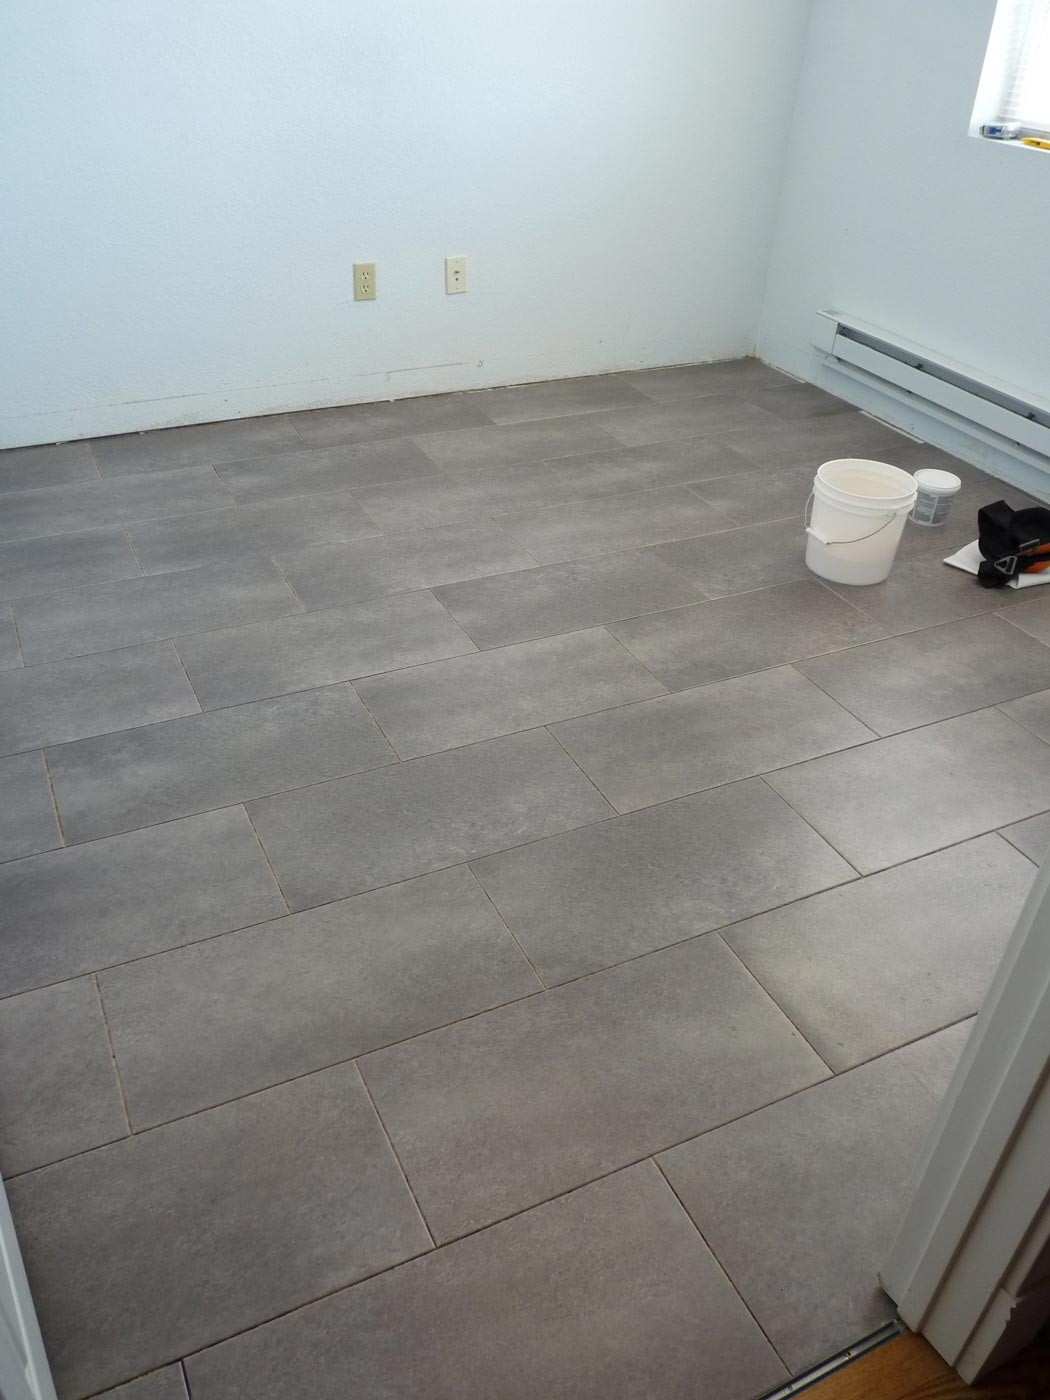 Bedroom makeover 1 part 4 laying the tile cathy graham for Groutable vinyl tile in bathroom